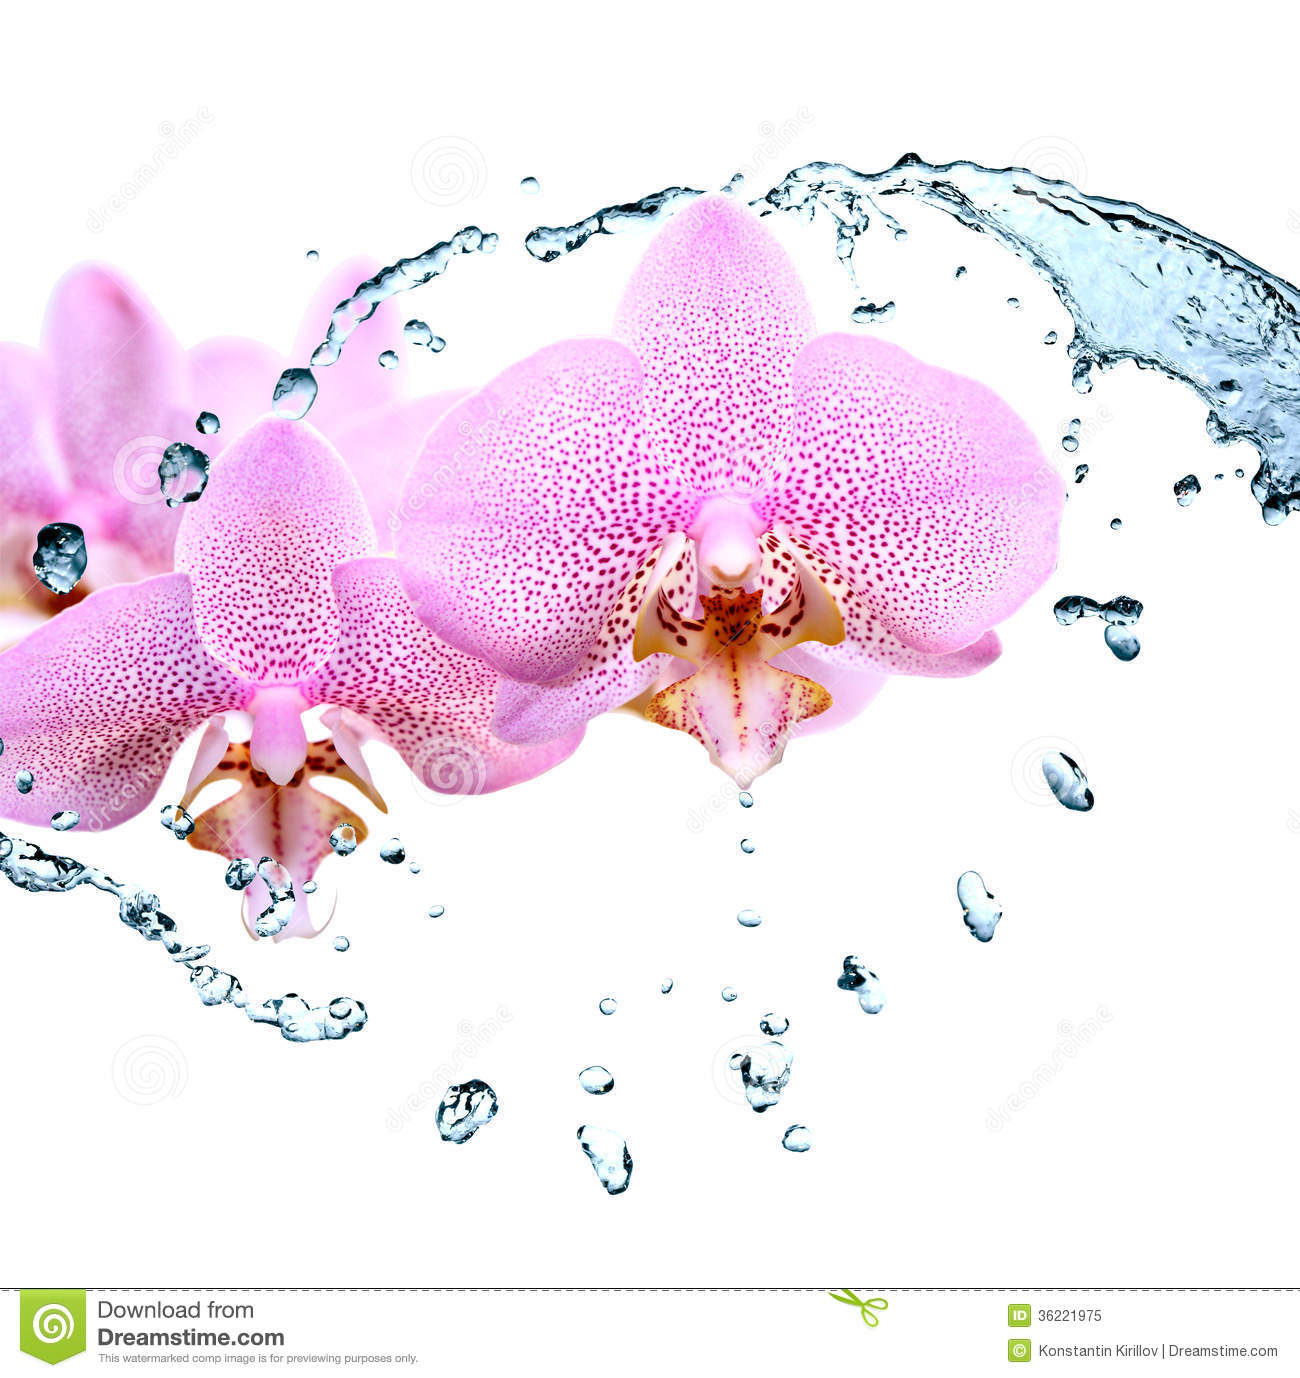 White Orchid Water Pink: Orchid And Water Royalty Free Stock Photo